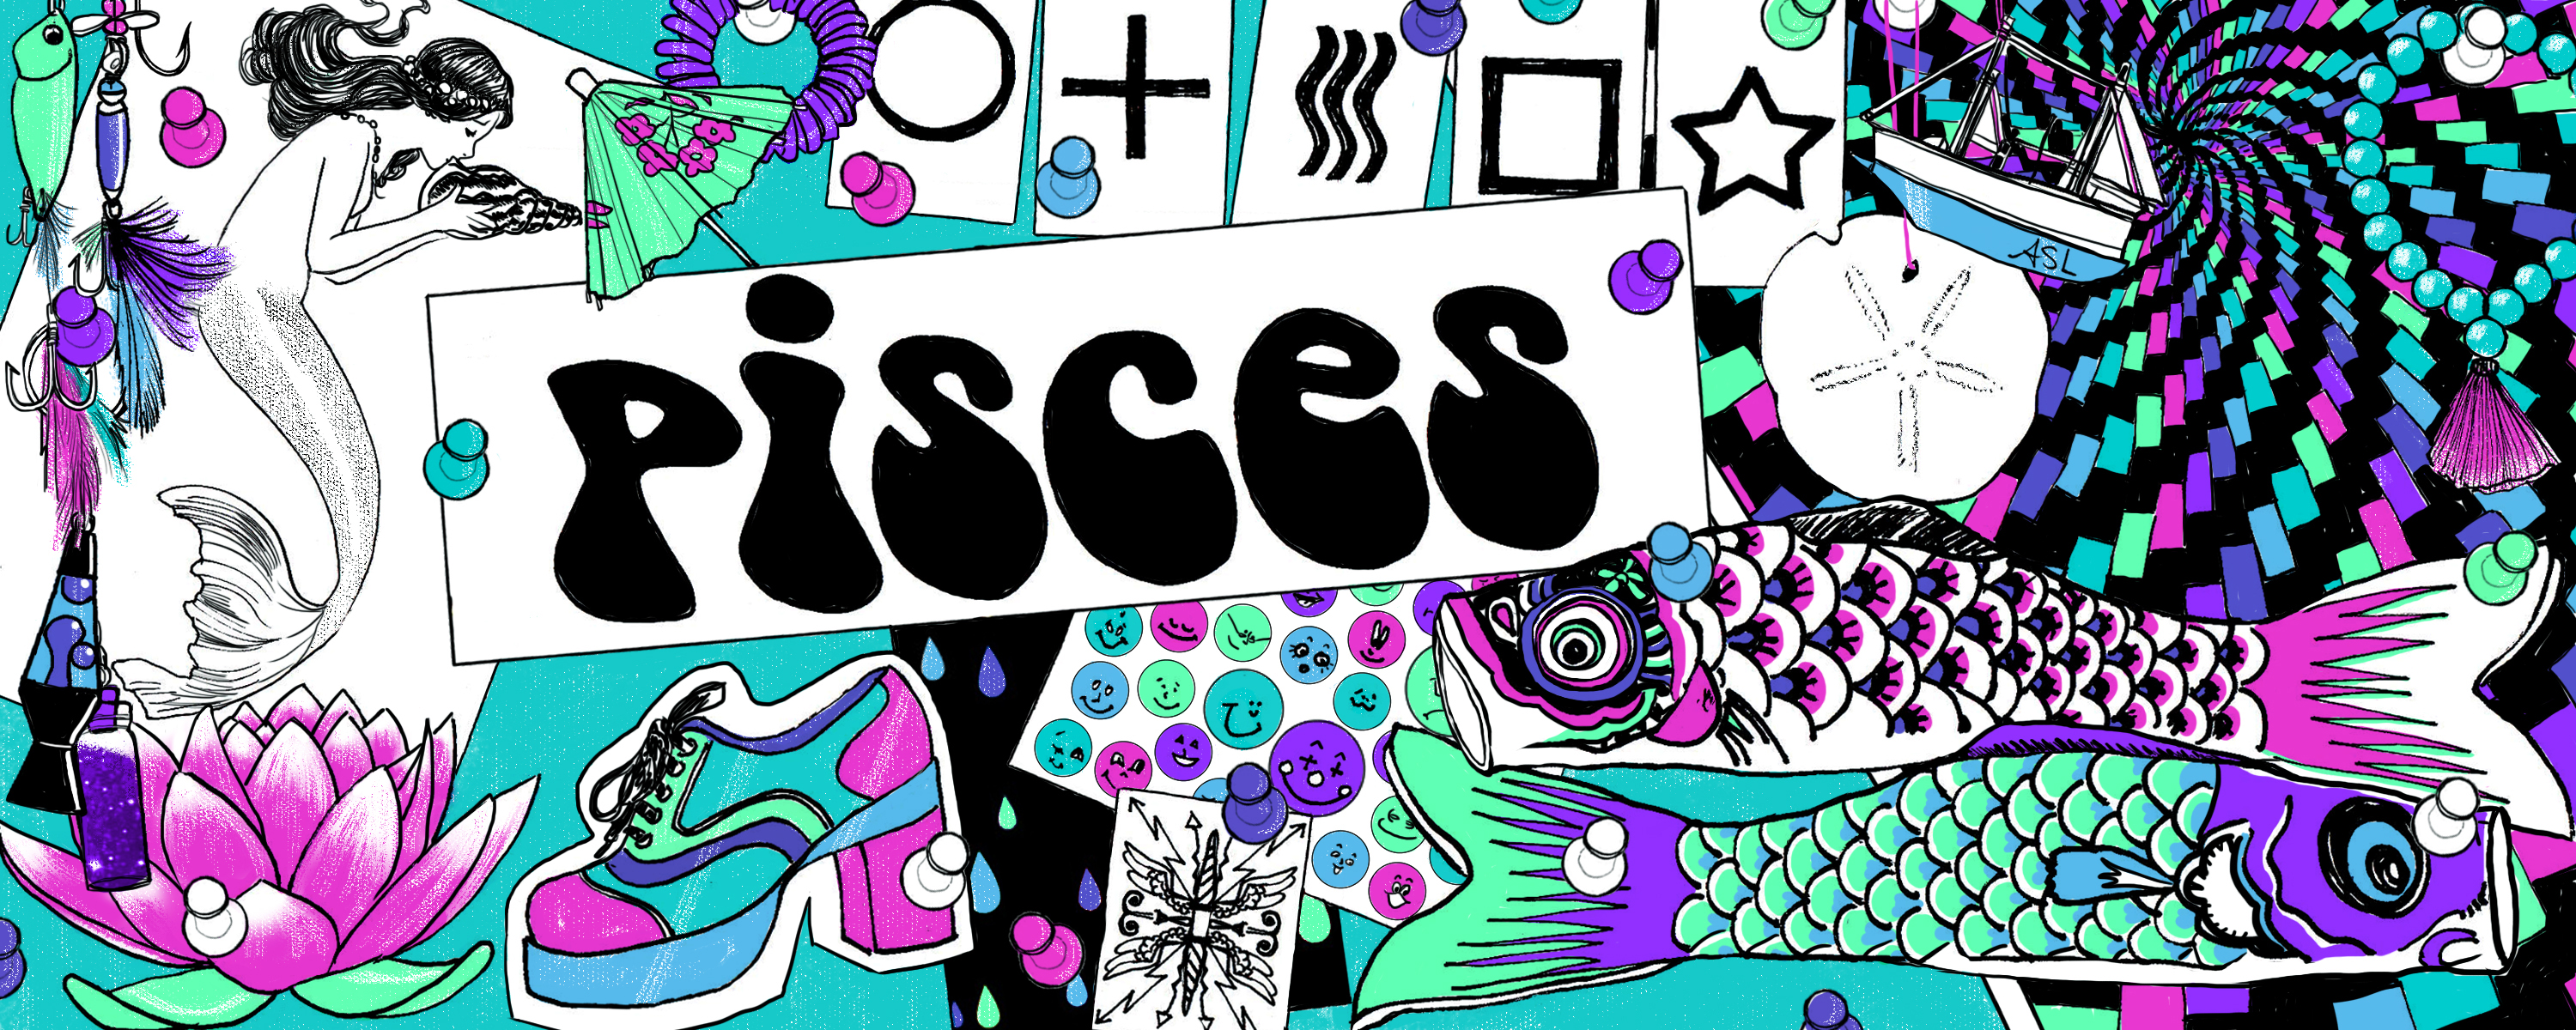 Monthly Horoscope: Pisces July 2019 - VICE